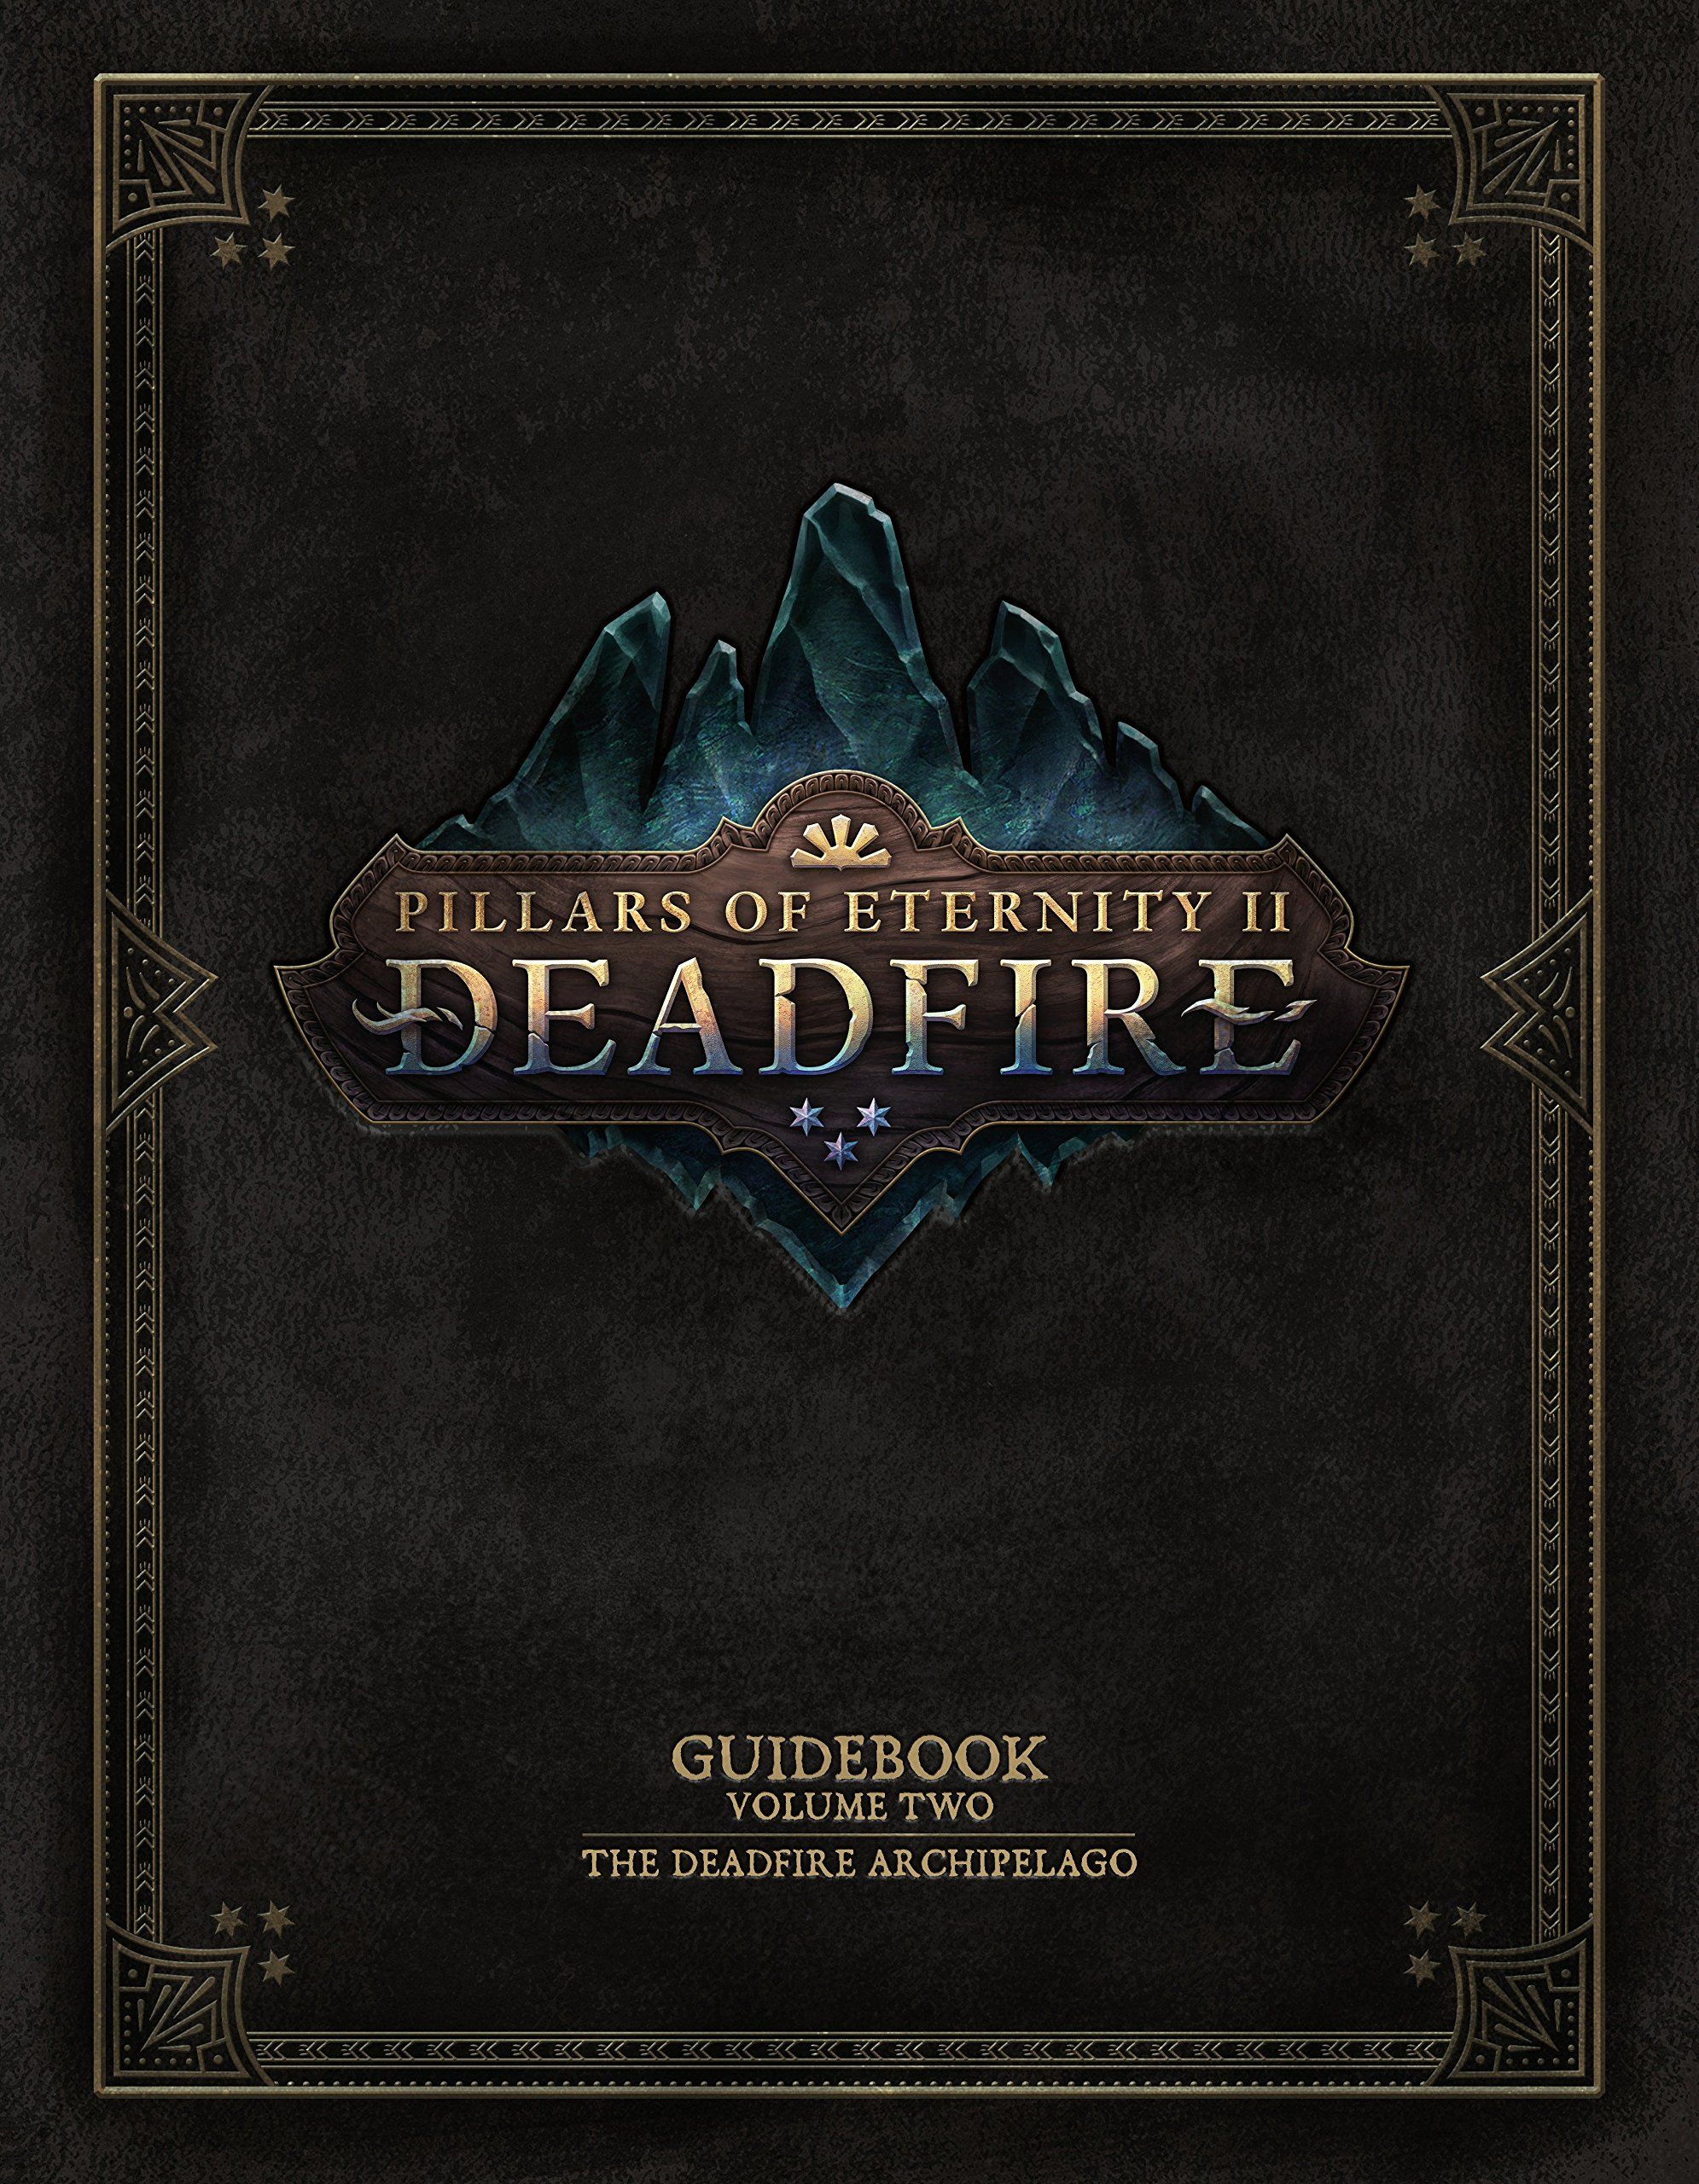 Pillars of Eternity Guidebook: Volume Two-The Deadfire Archipelago by Dark Horse Books